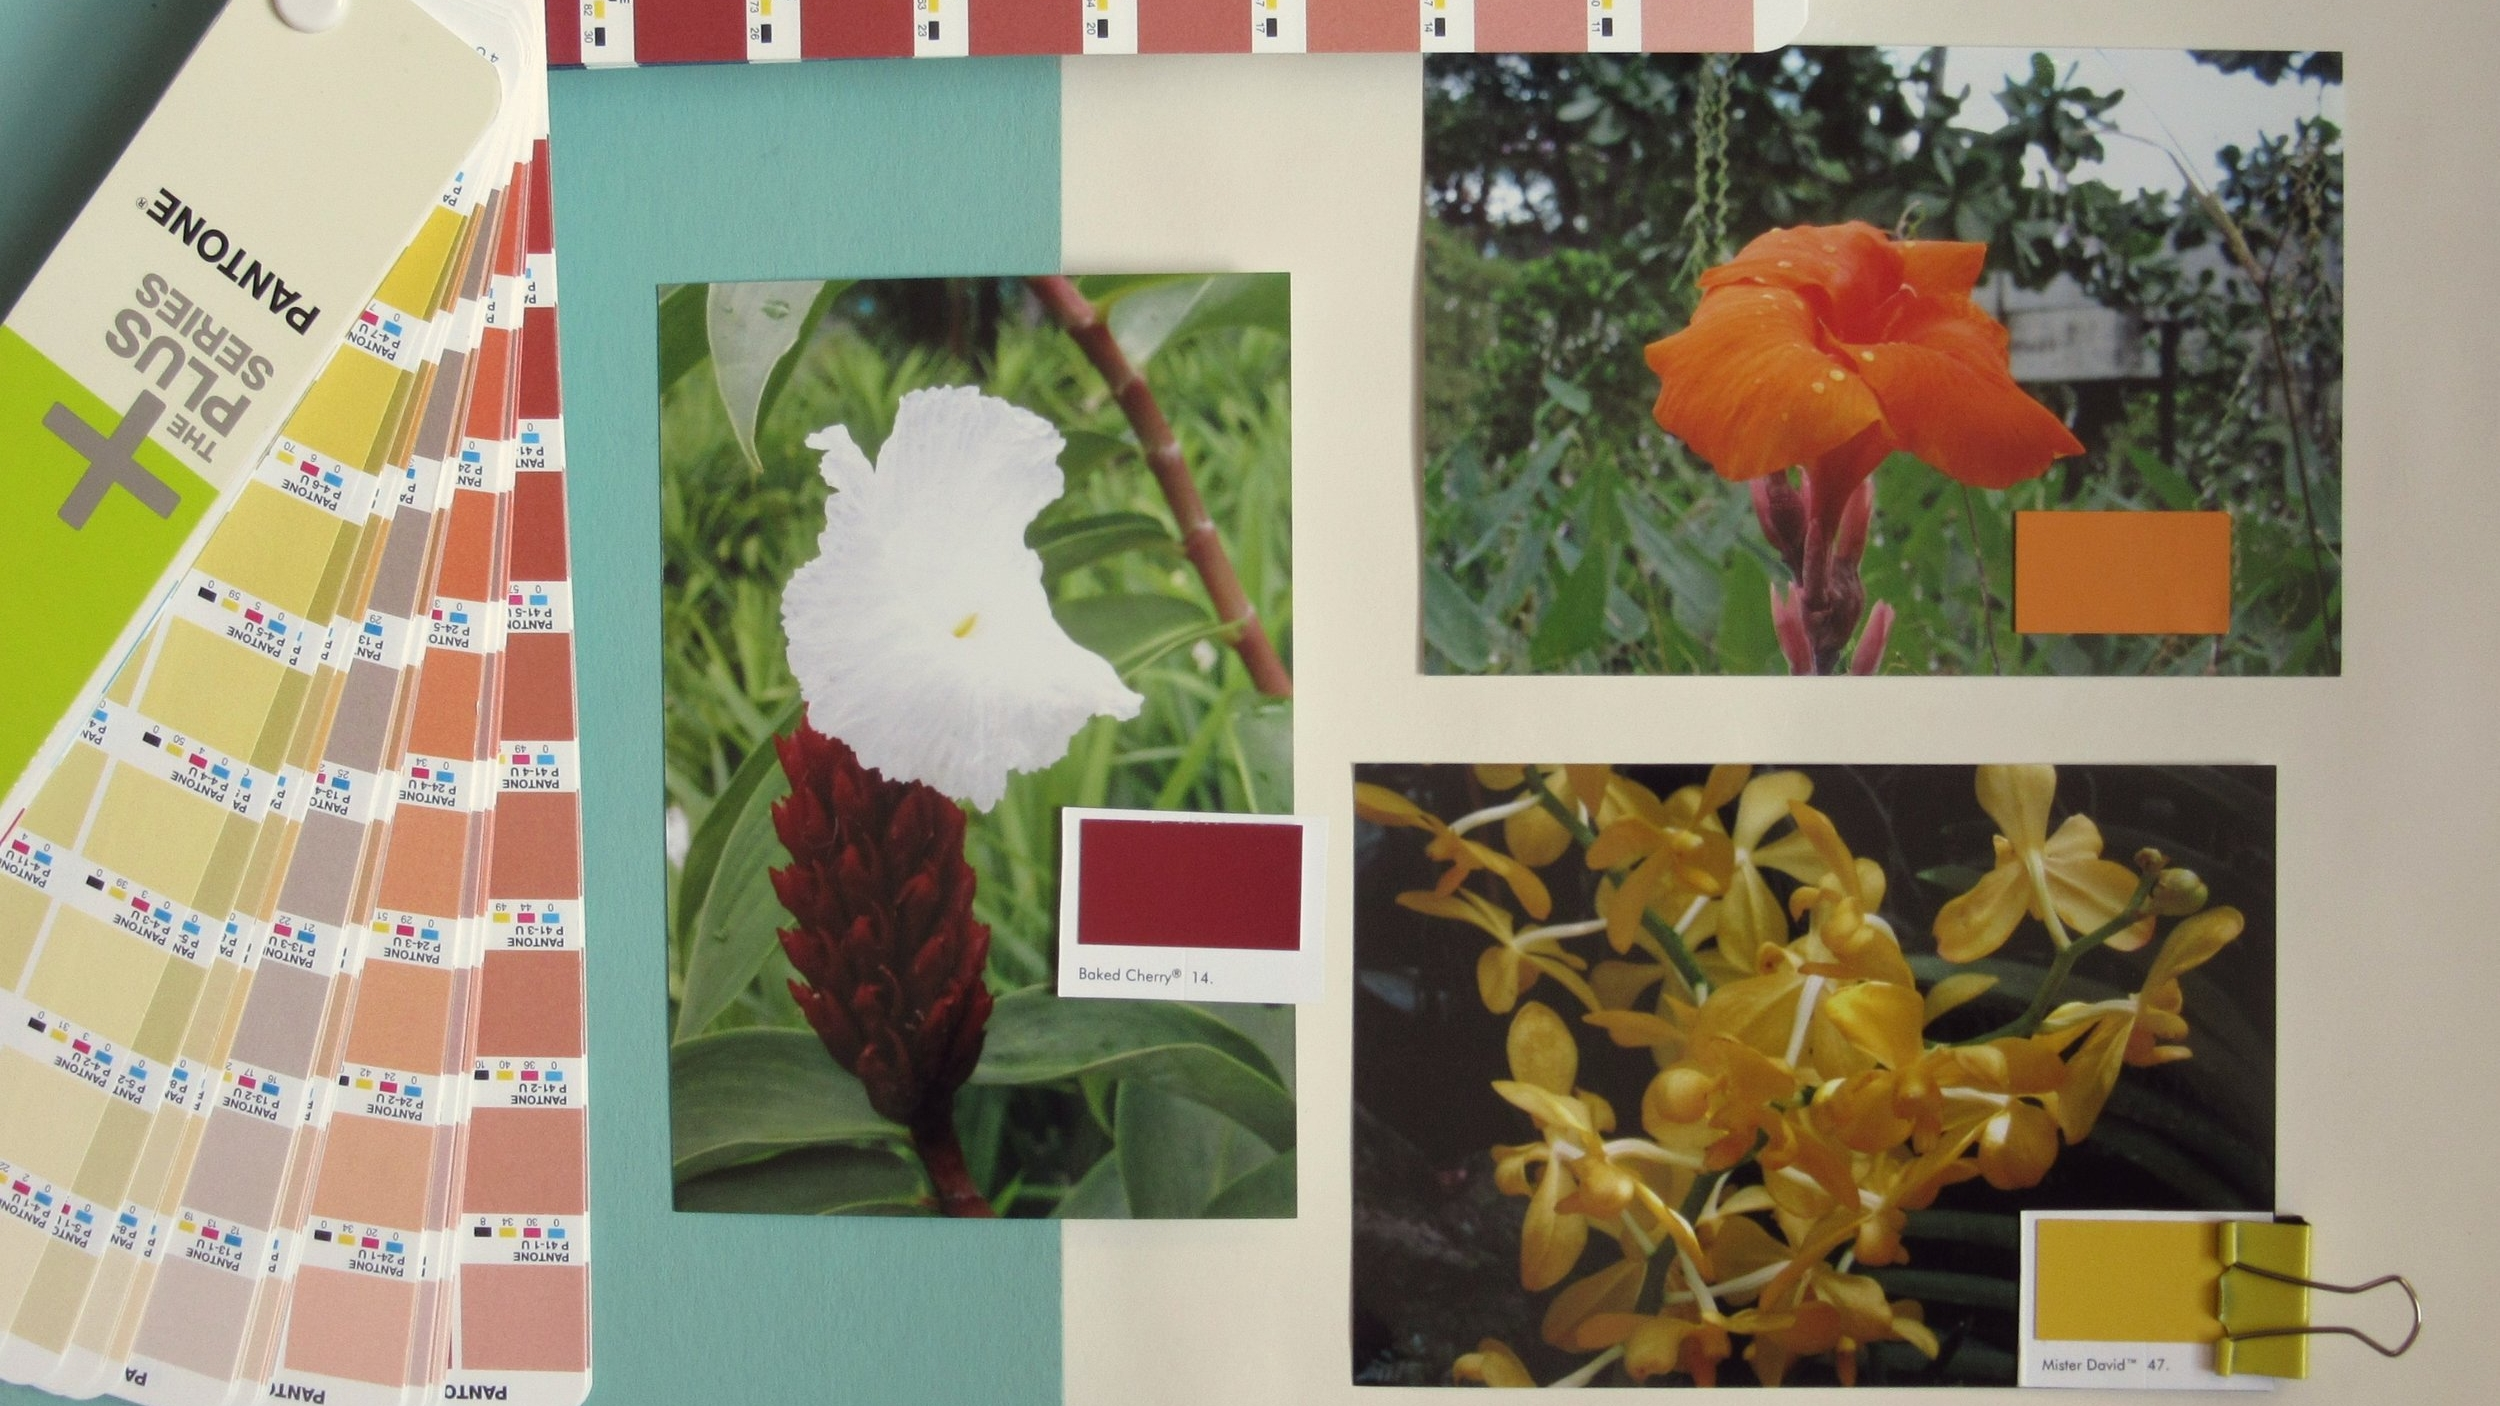 ... & tropical brights - Paint colours: (clockwise from far left) Little Greene Baked Cherry; Marigold; Mister David.